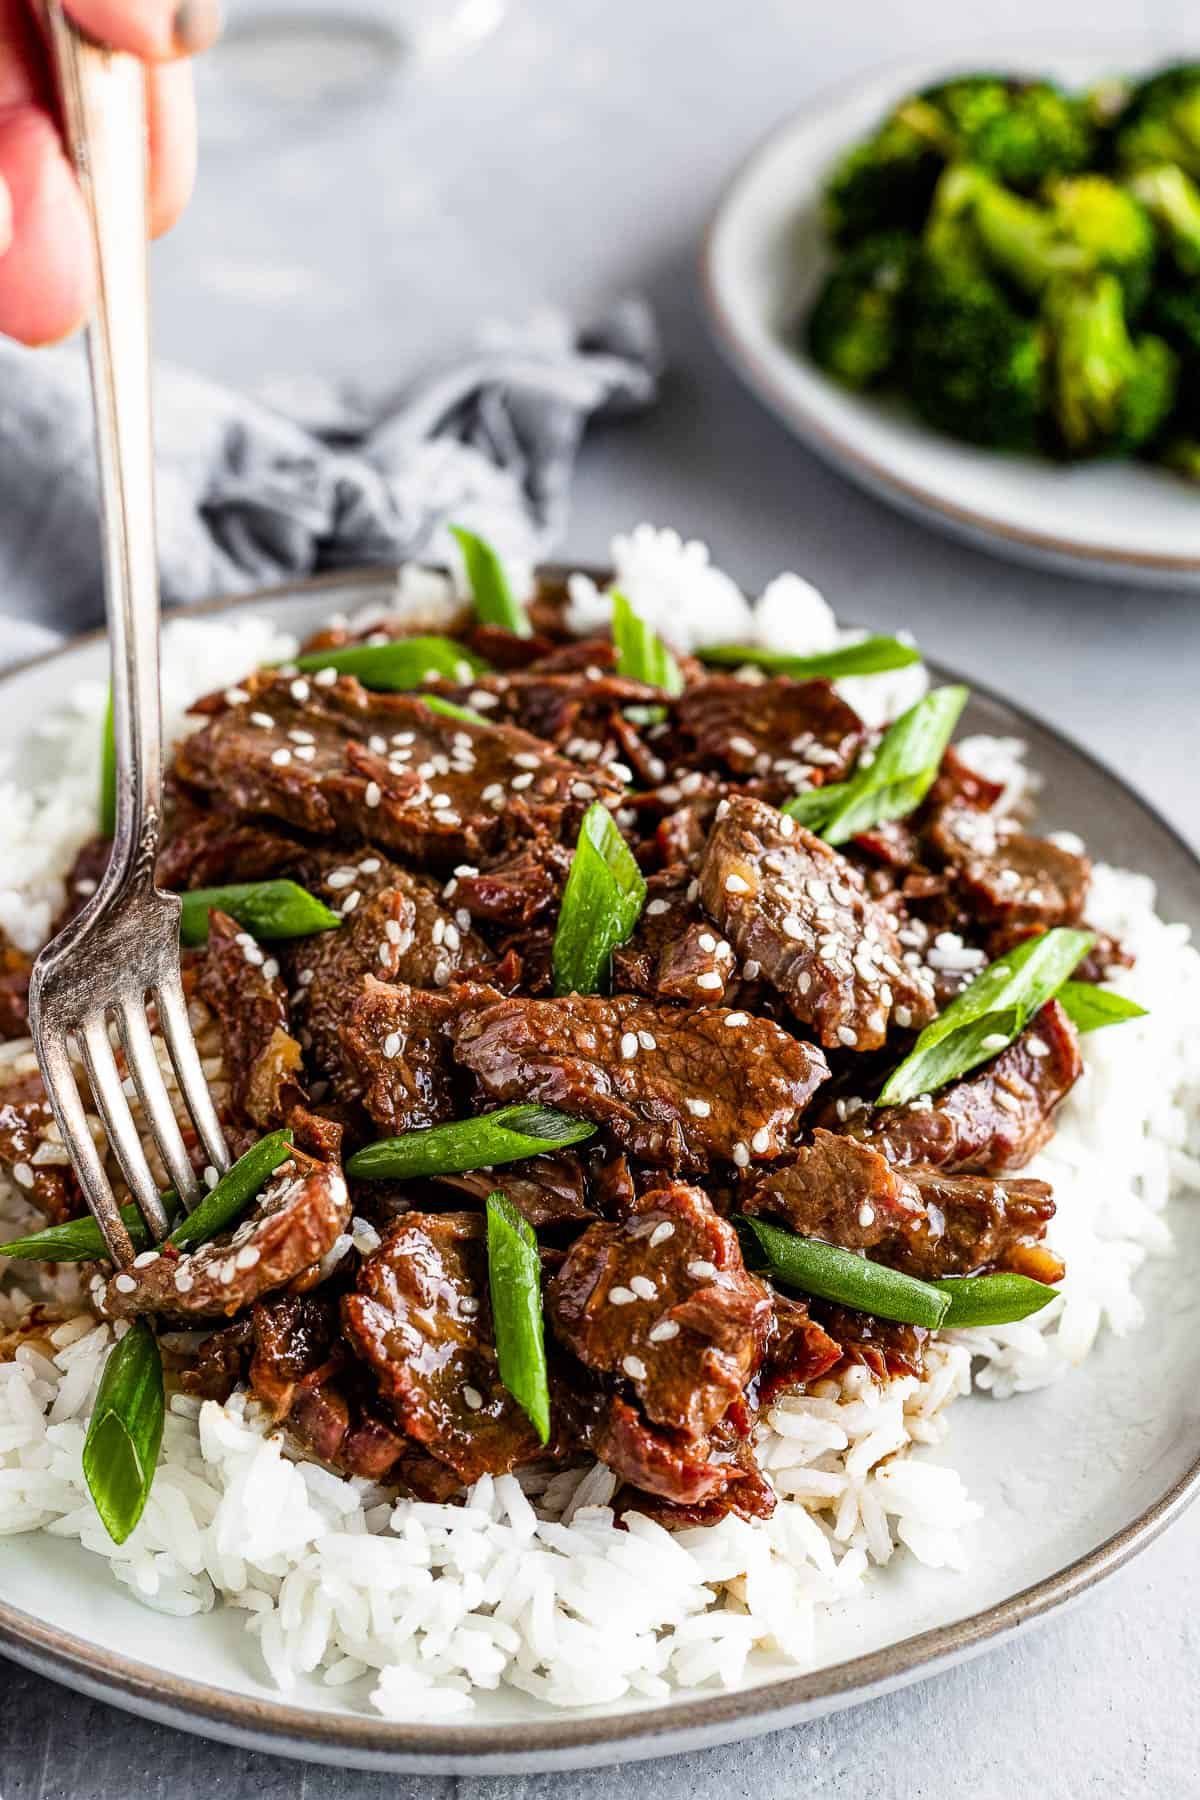 A Metal Fork Digging Into a Plate of Instant Pot Mongolian Beef Over White Rice